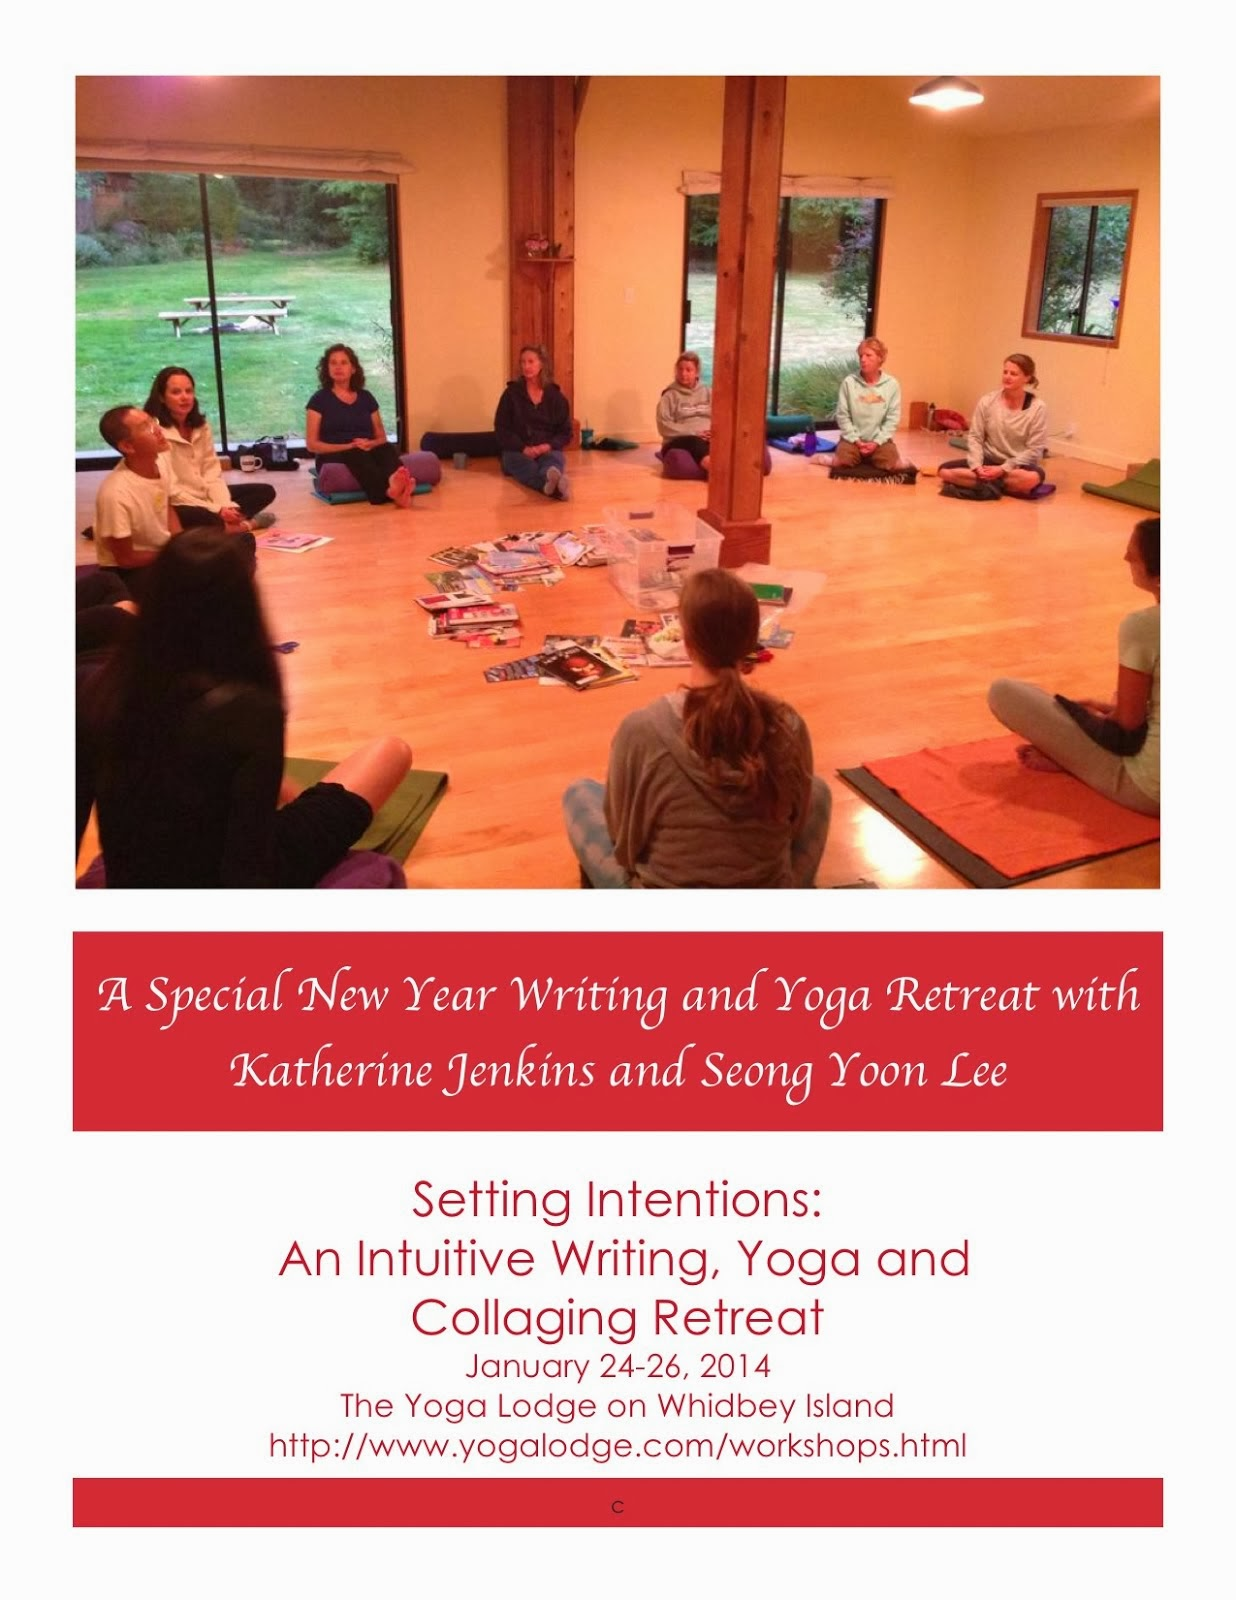 NEW 2015 YOGA AND WRITING RETREATS